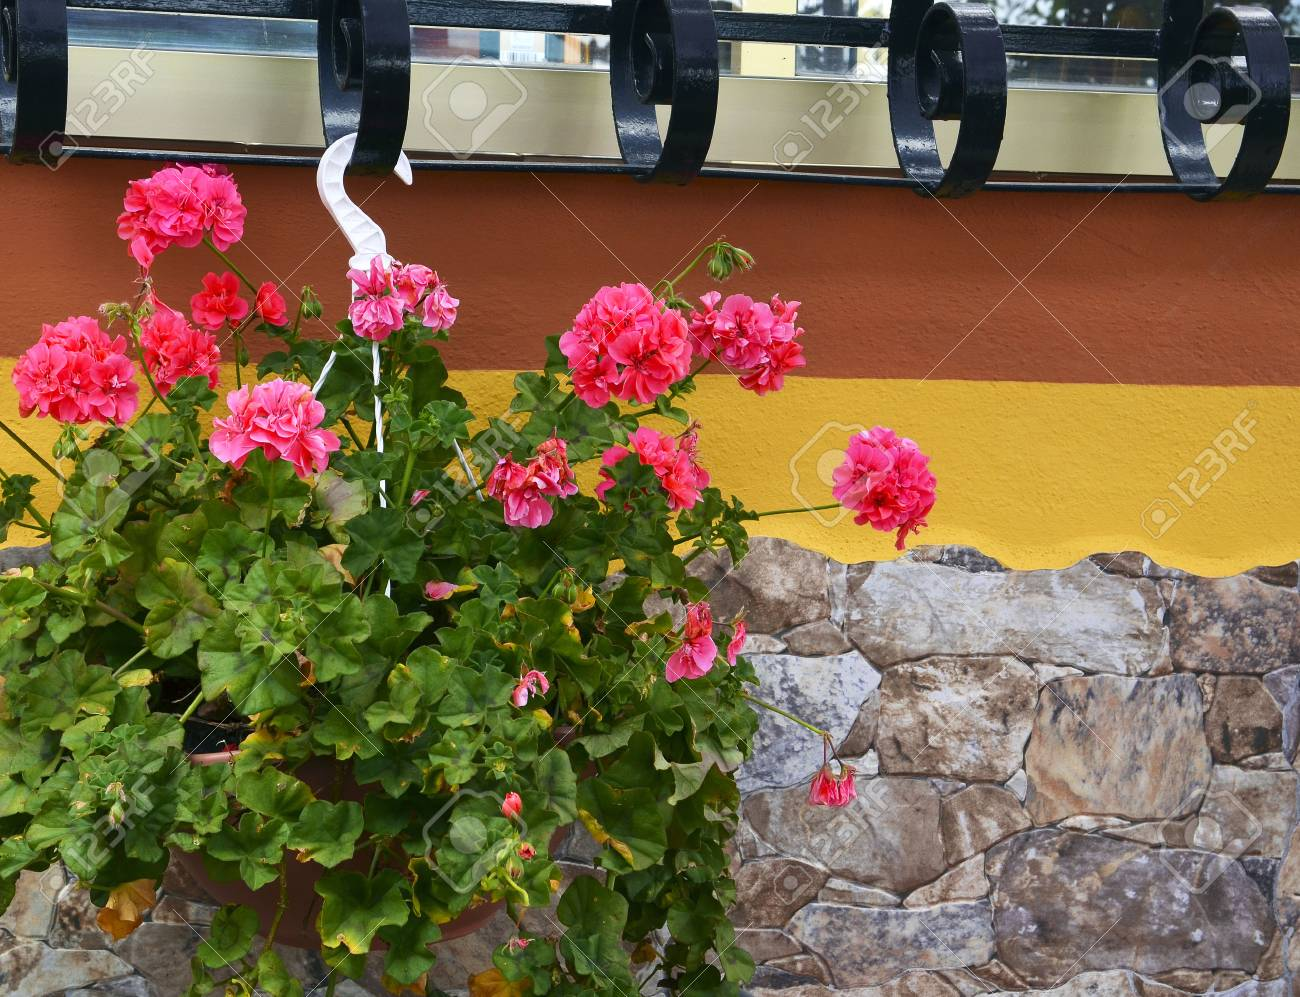 geranium plant with pink flowers in hanging flower pot on stone